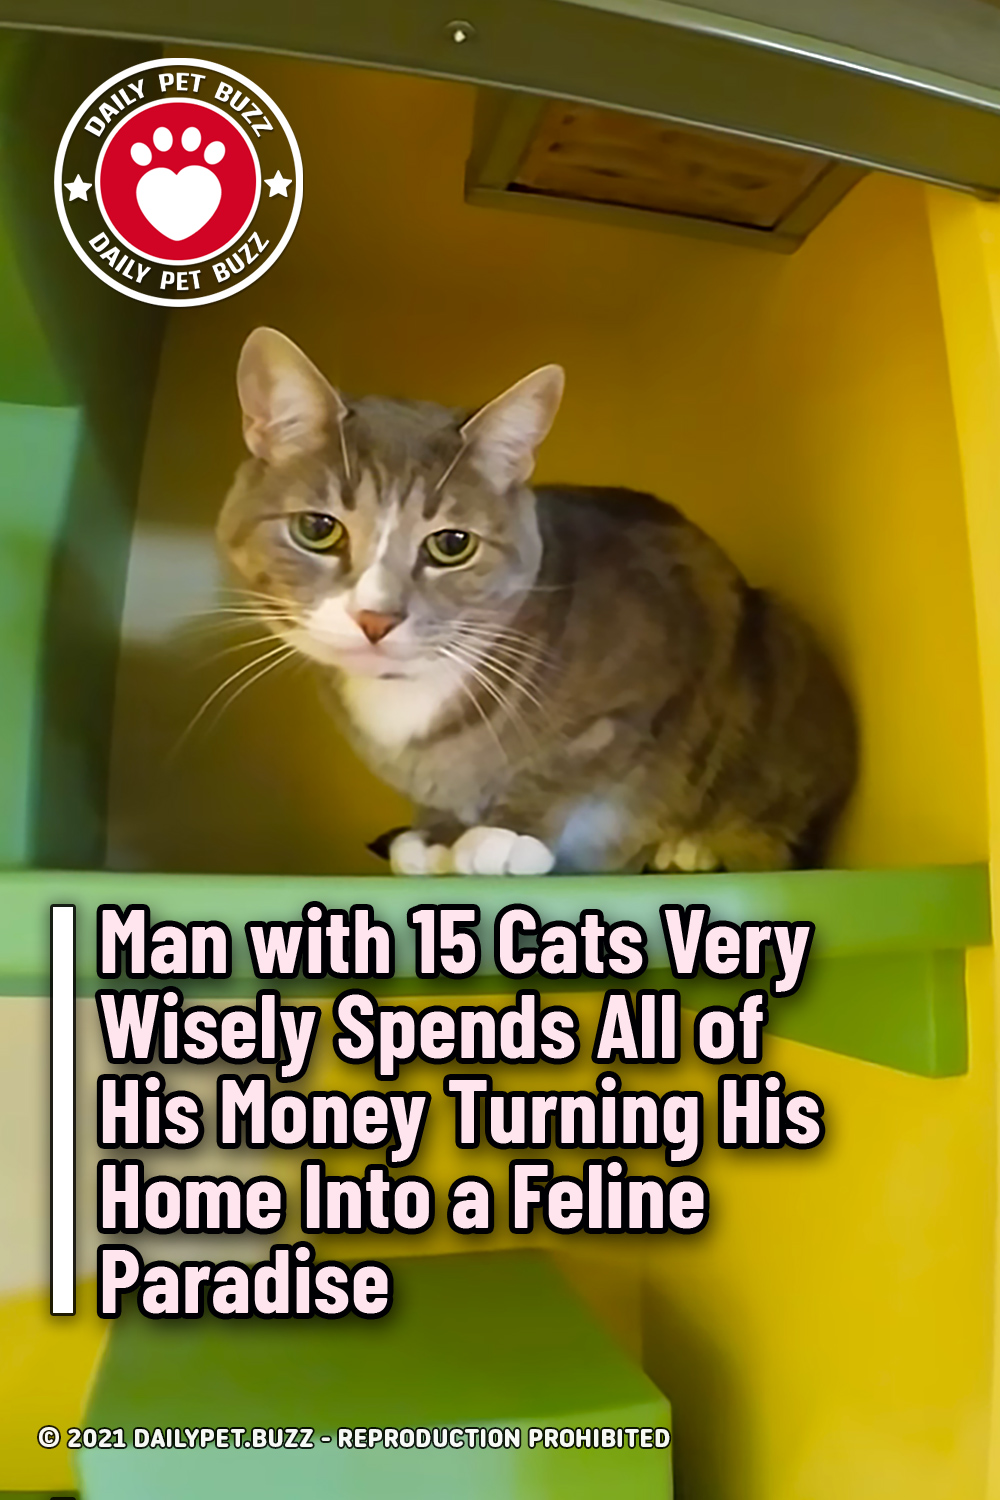 Man with 15 Cats Very Wisely Spends All of His Money Turning His Home Into a Feline Paradise